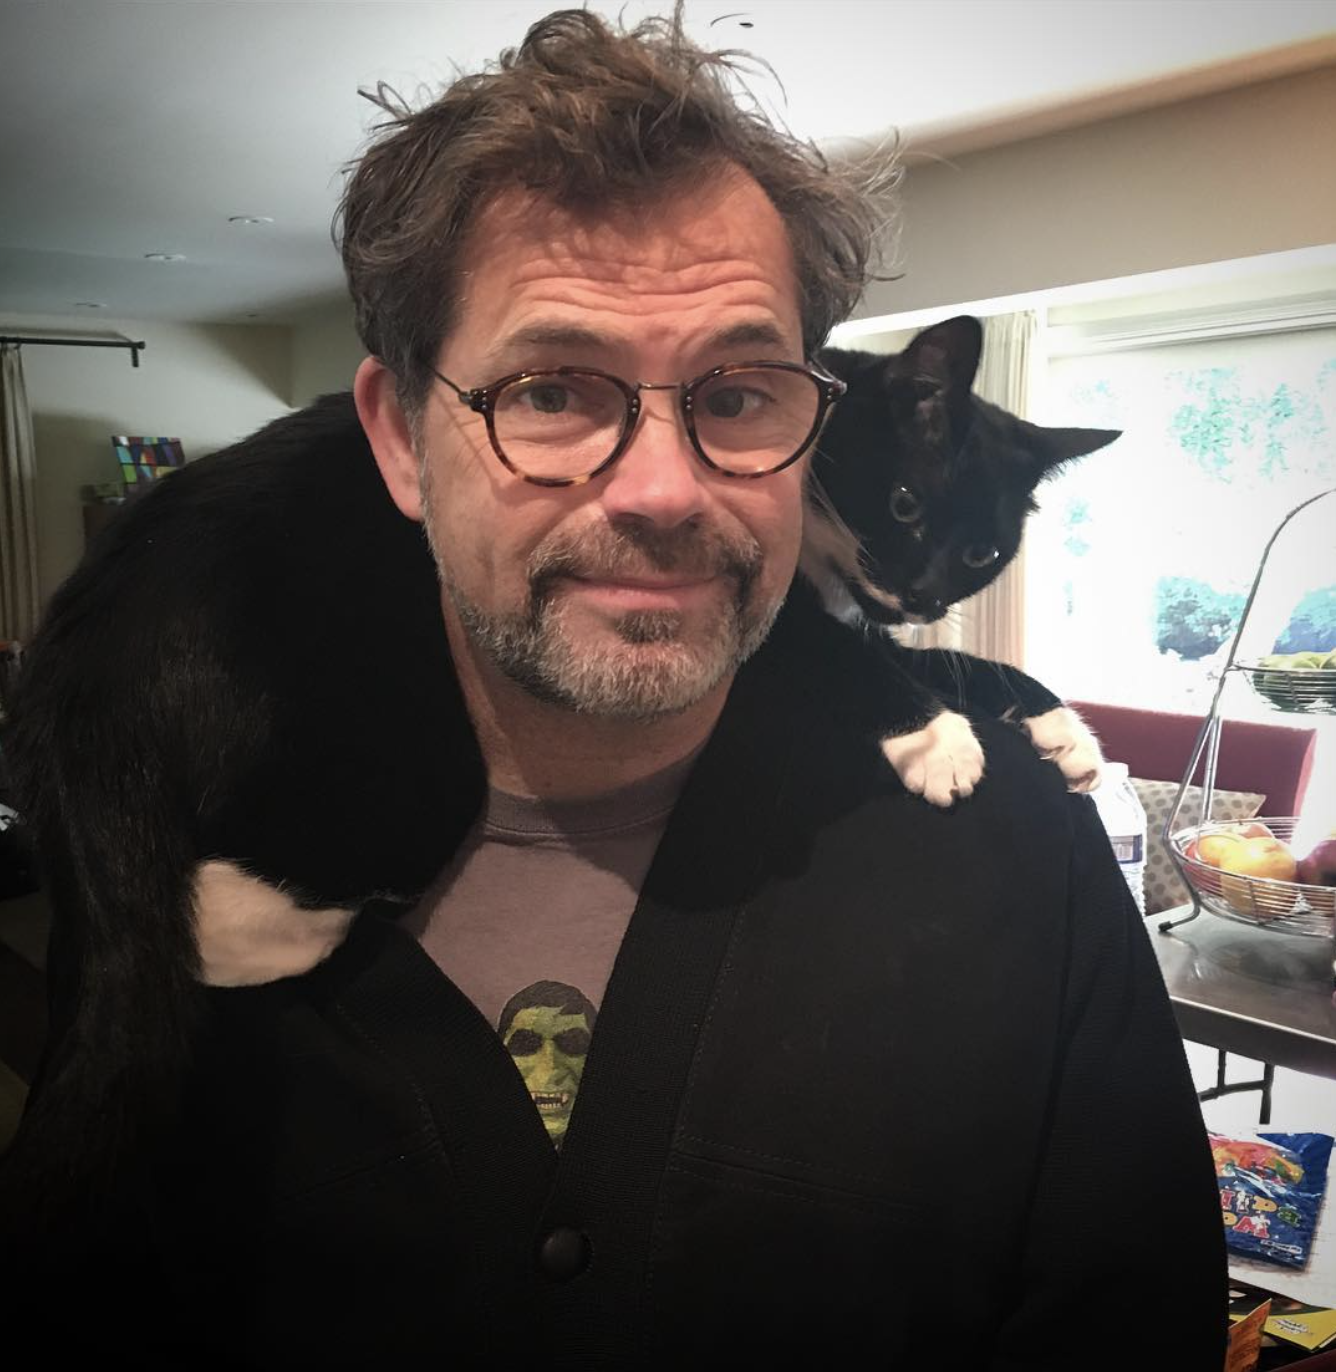 169 - Dana Gould - now.png